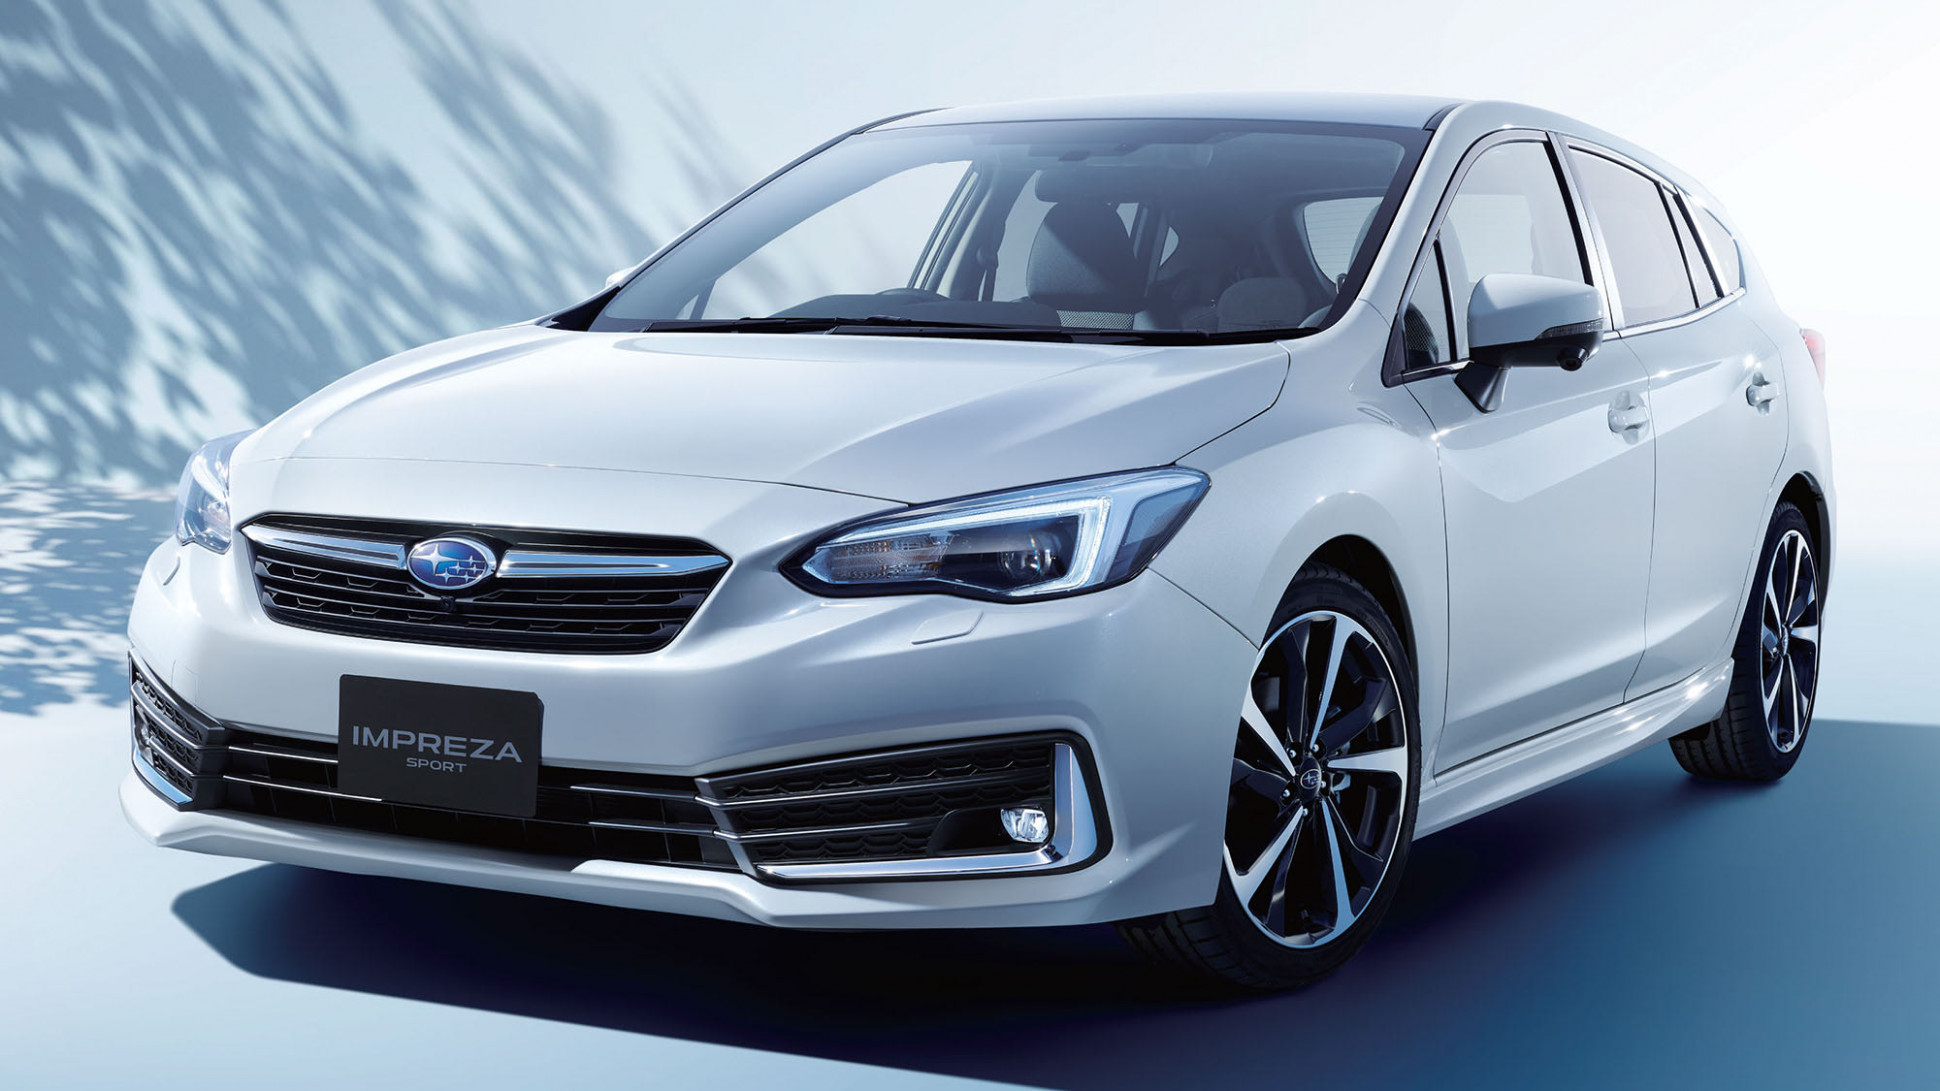 8 Subaru Impreza facelift unveiled in Japan | CarAdvice